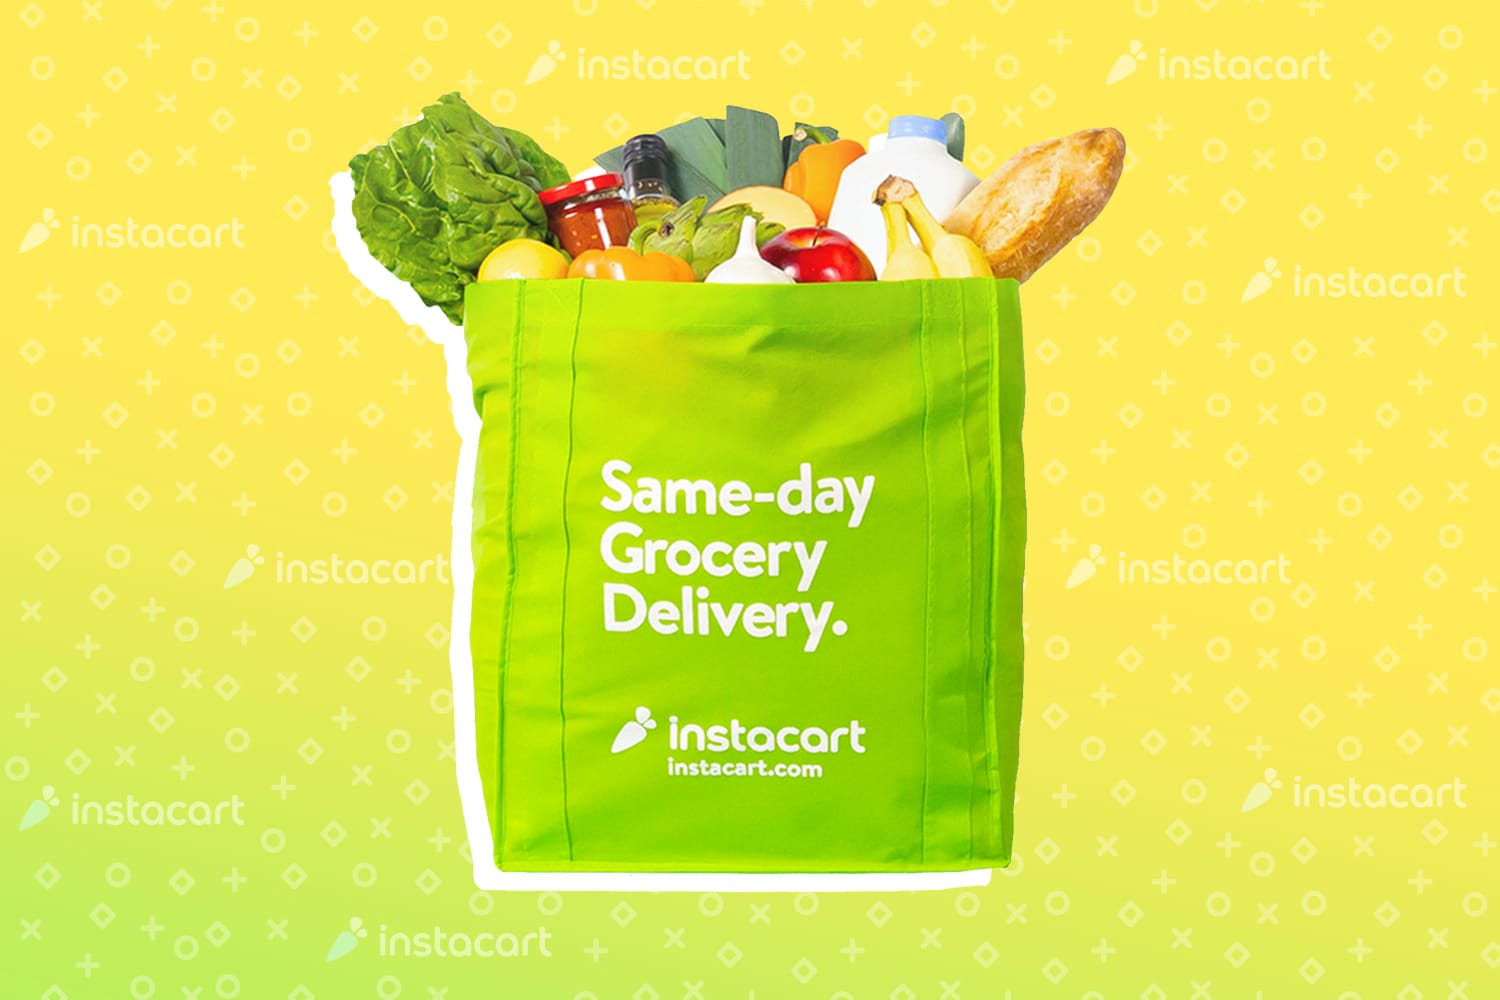 I've Been Using Instacart for 4 Months — Here's How It's Going